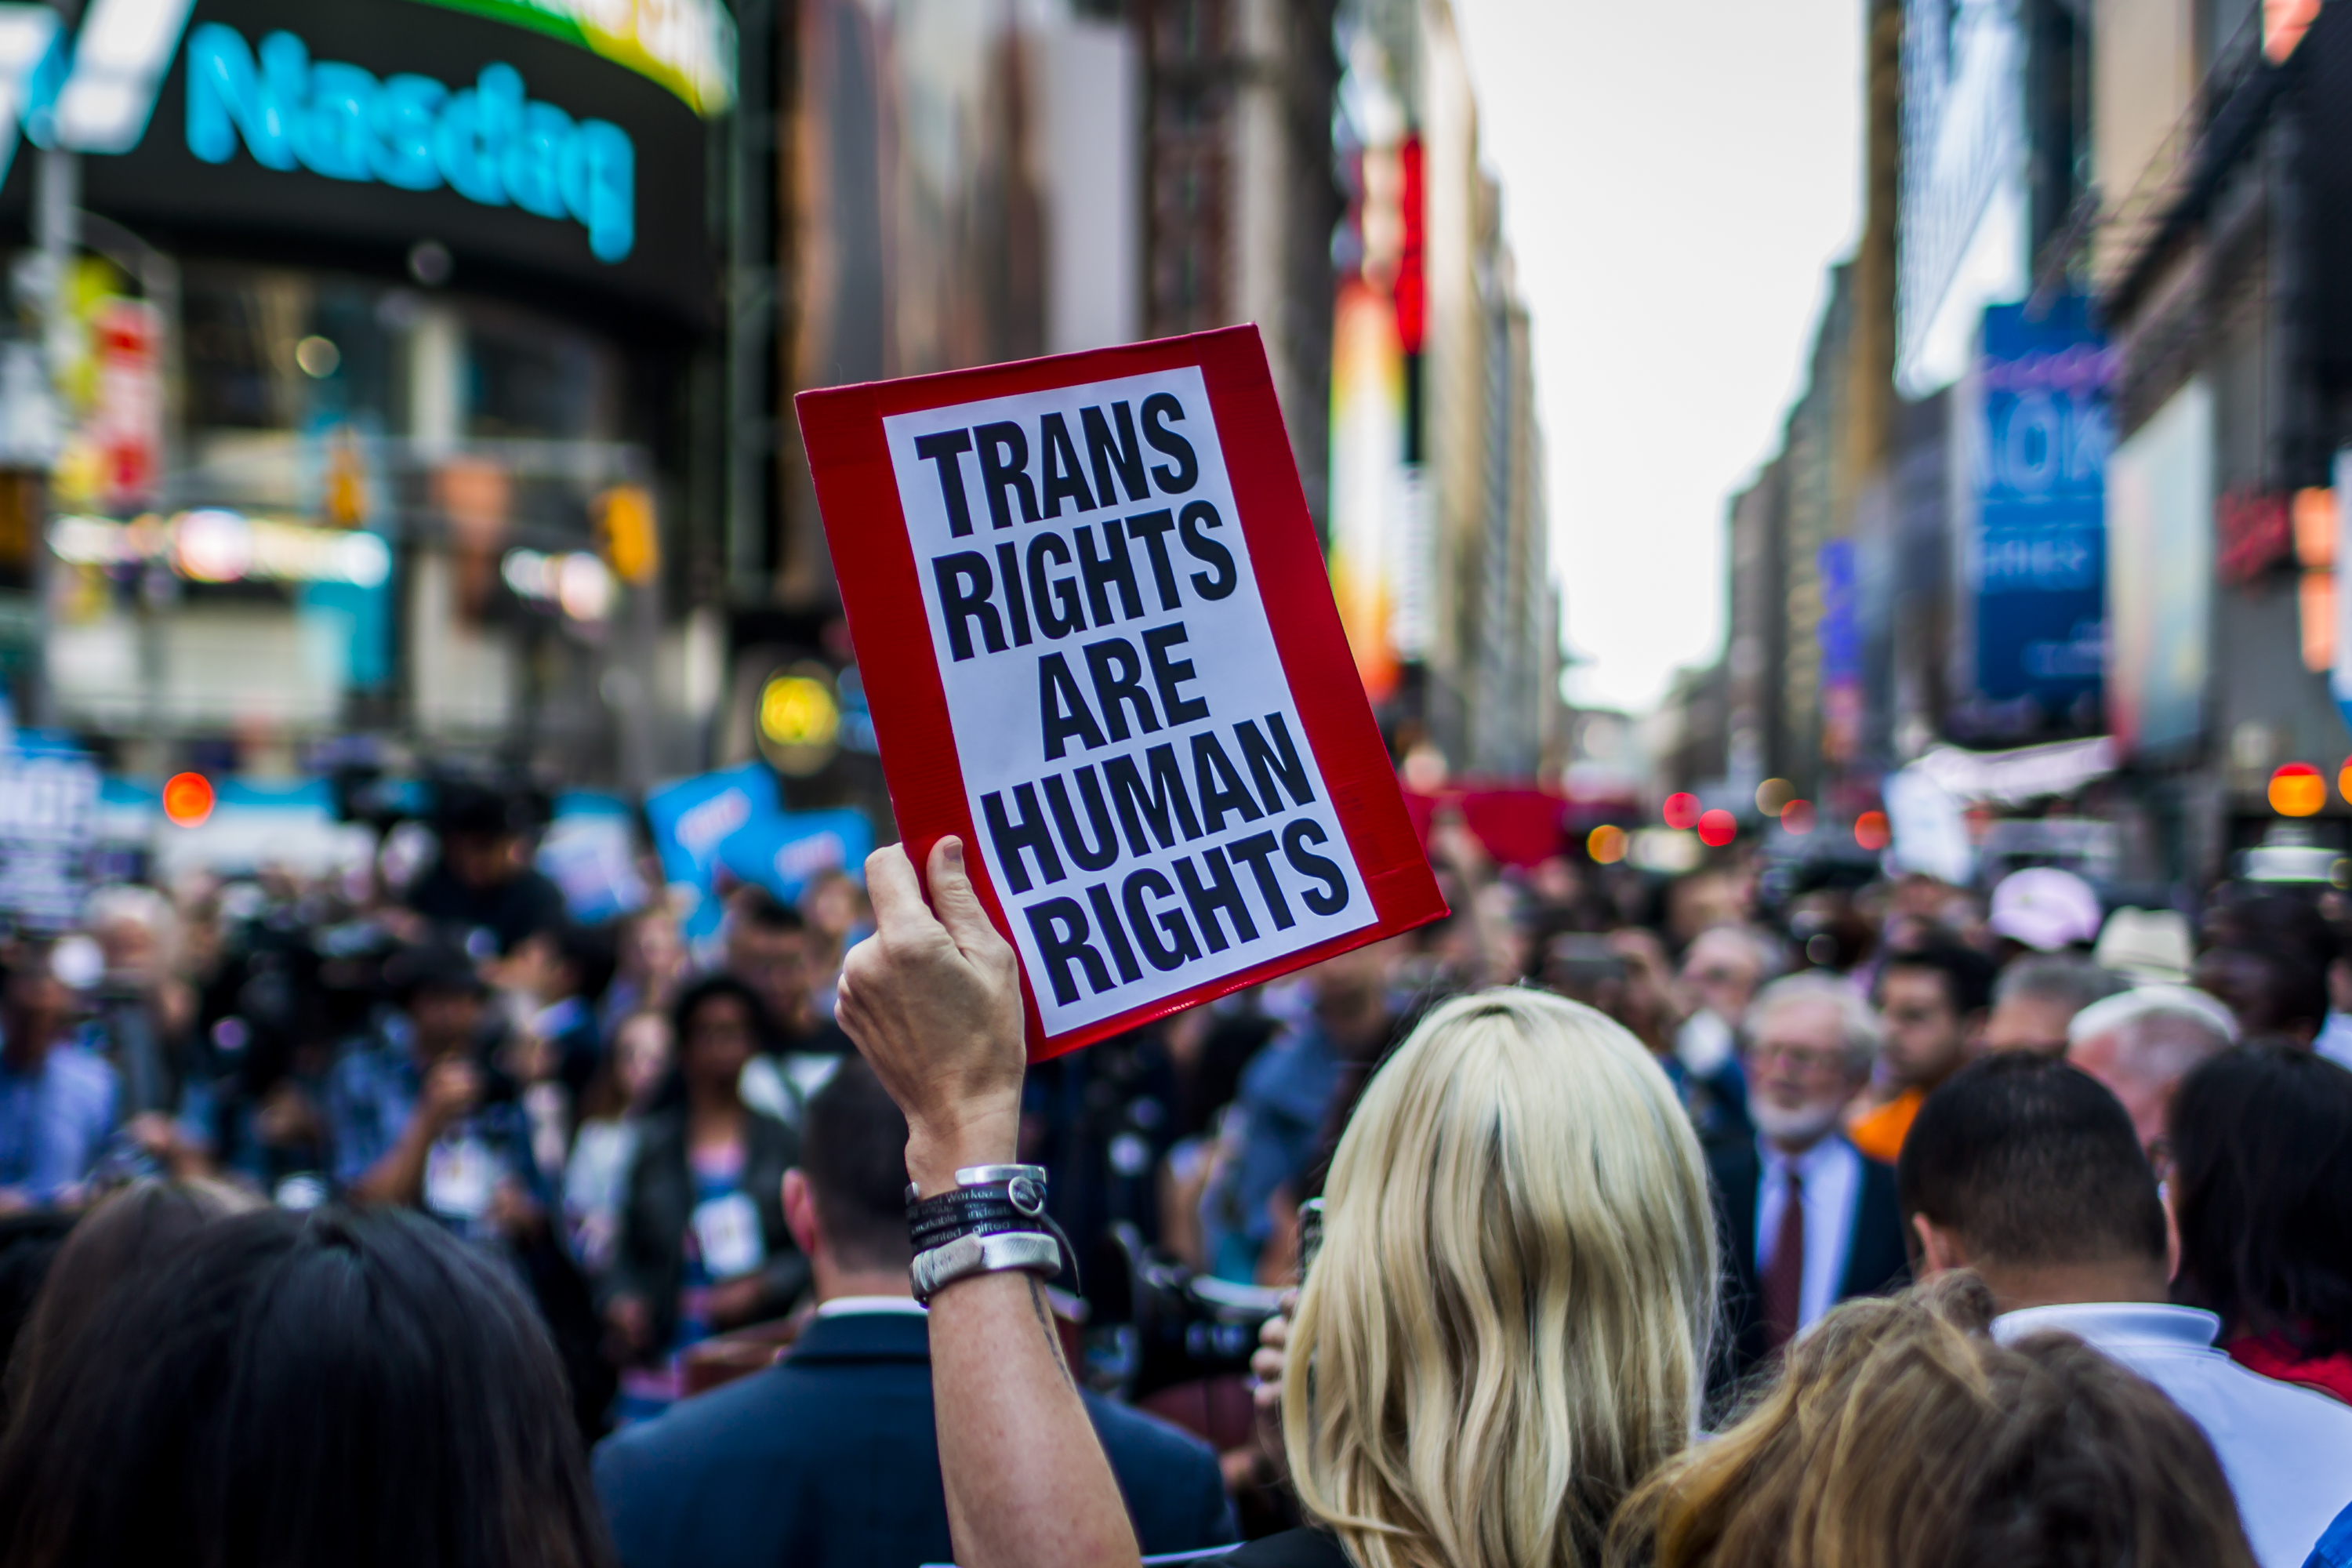 Protesters for transgender rights.